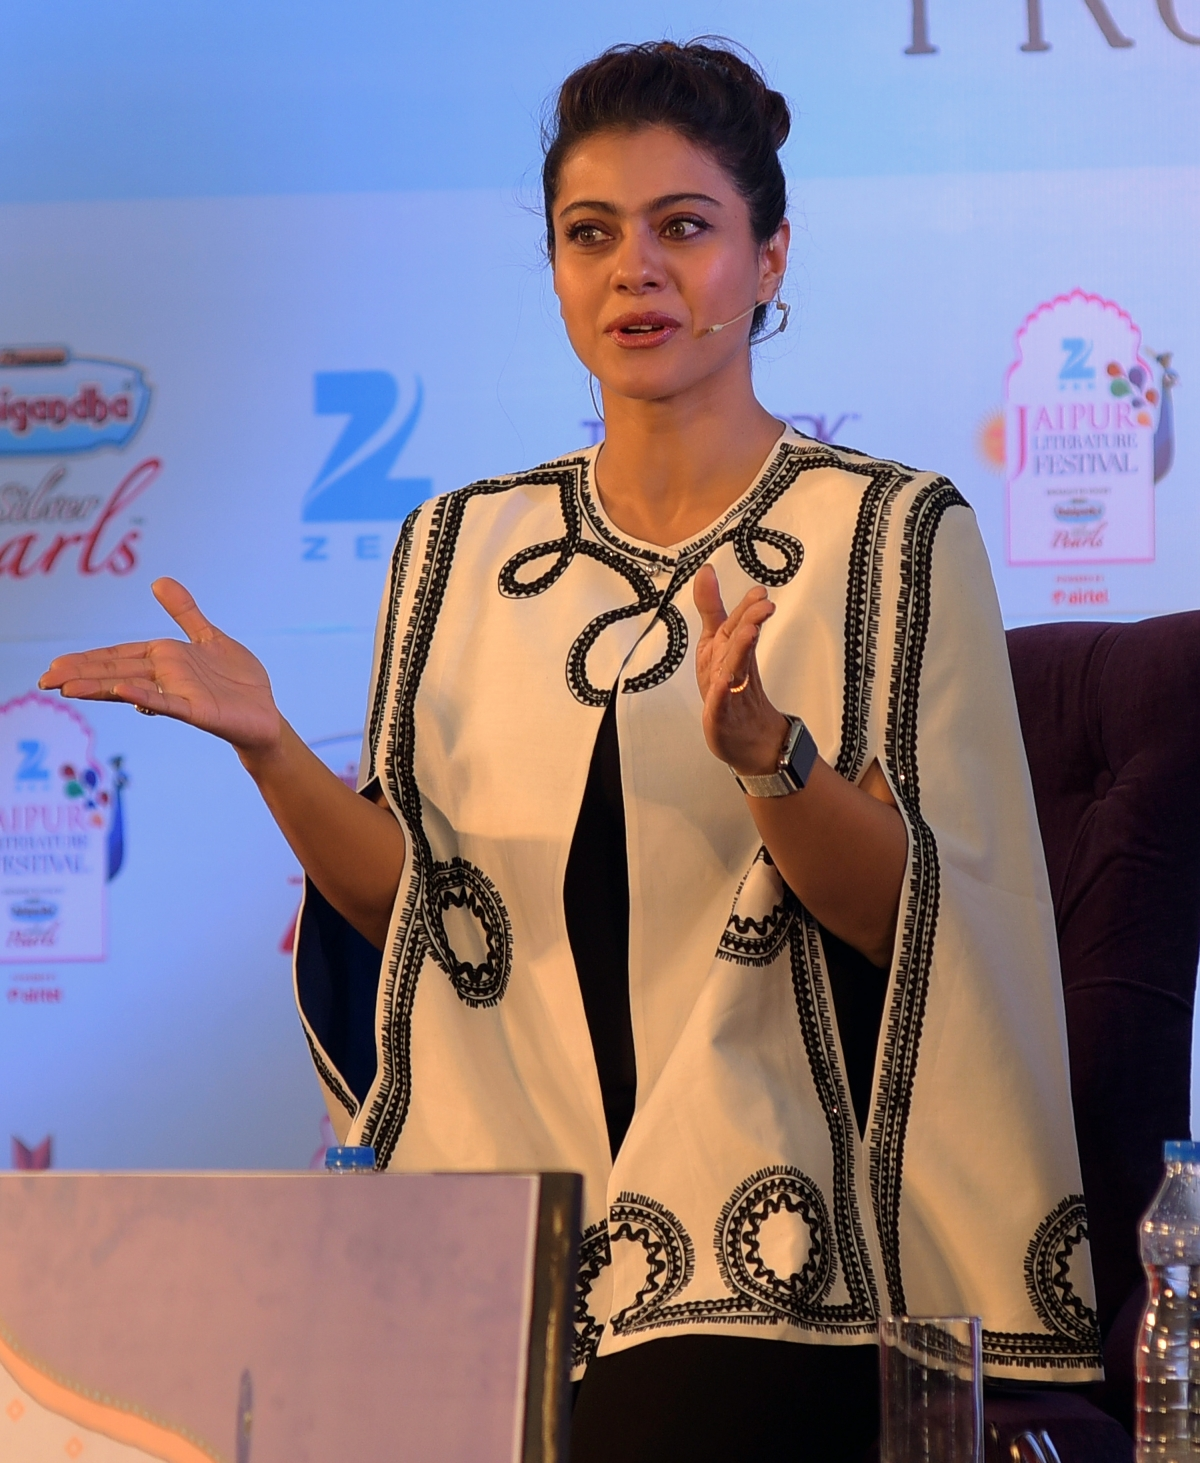 Kajol at Jaipur Literature Festival